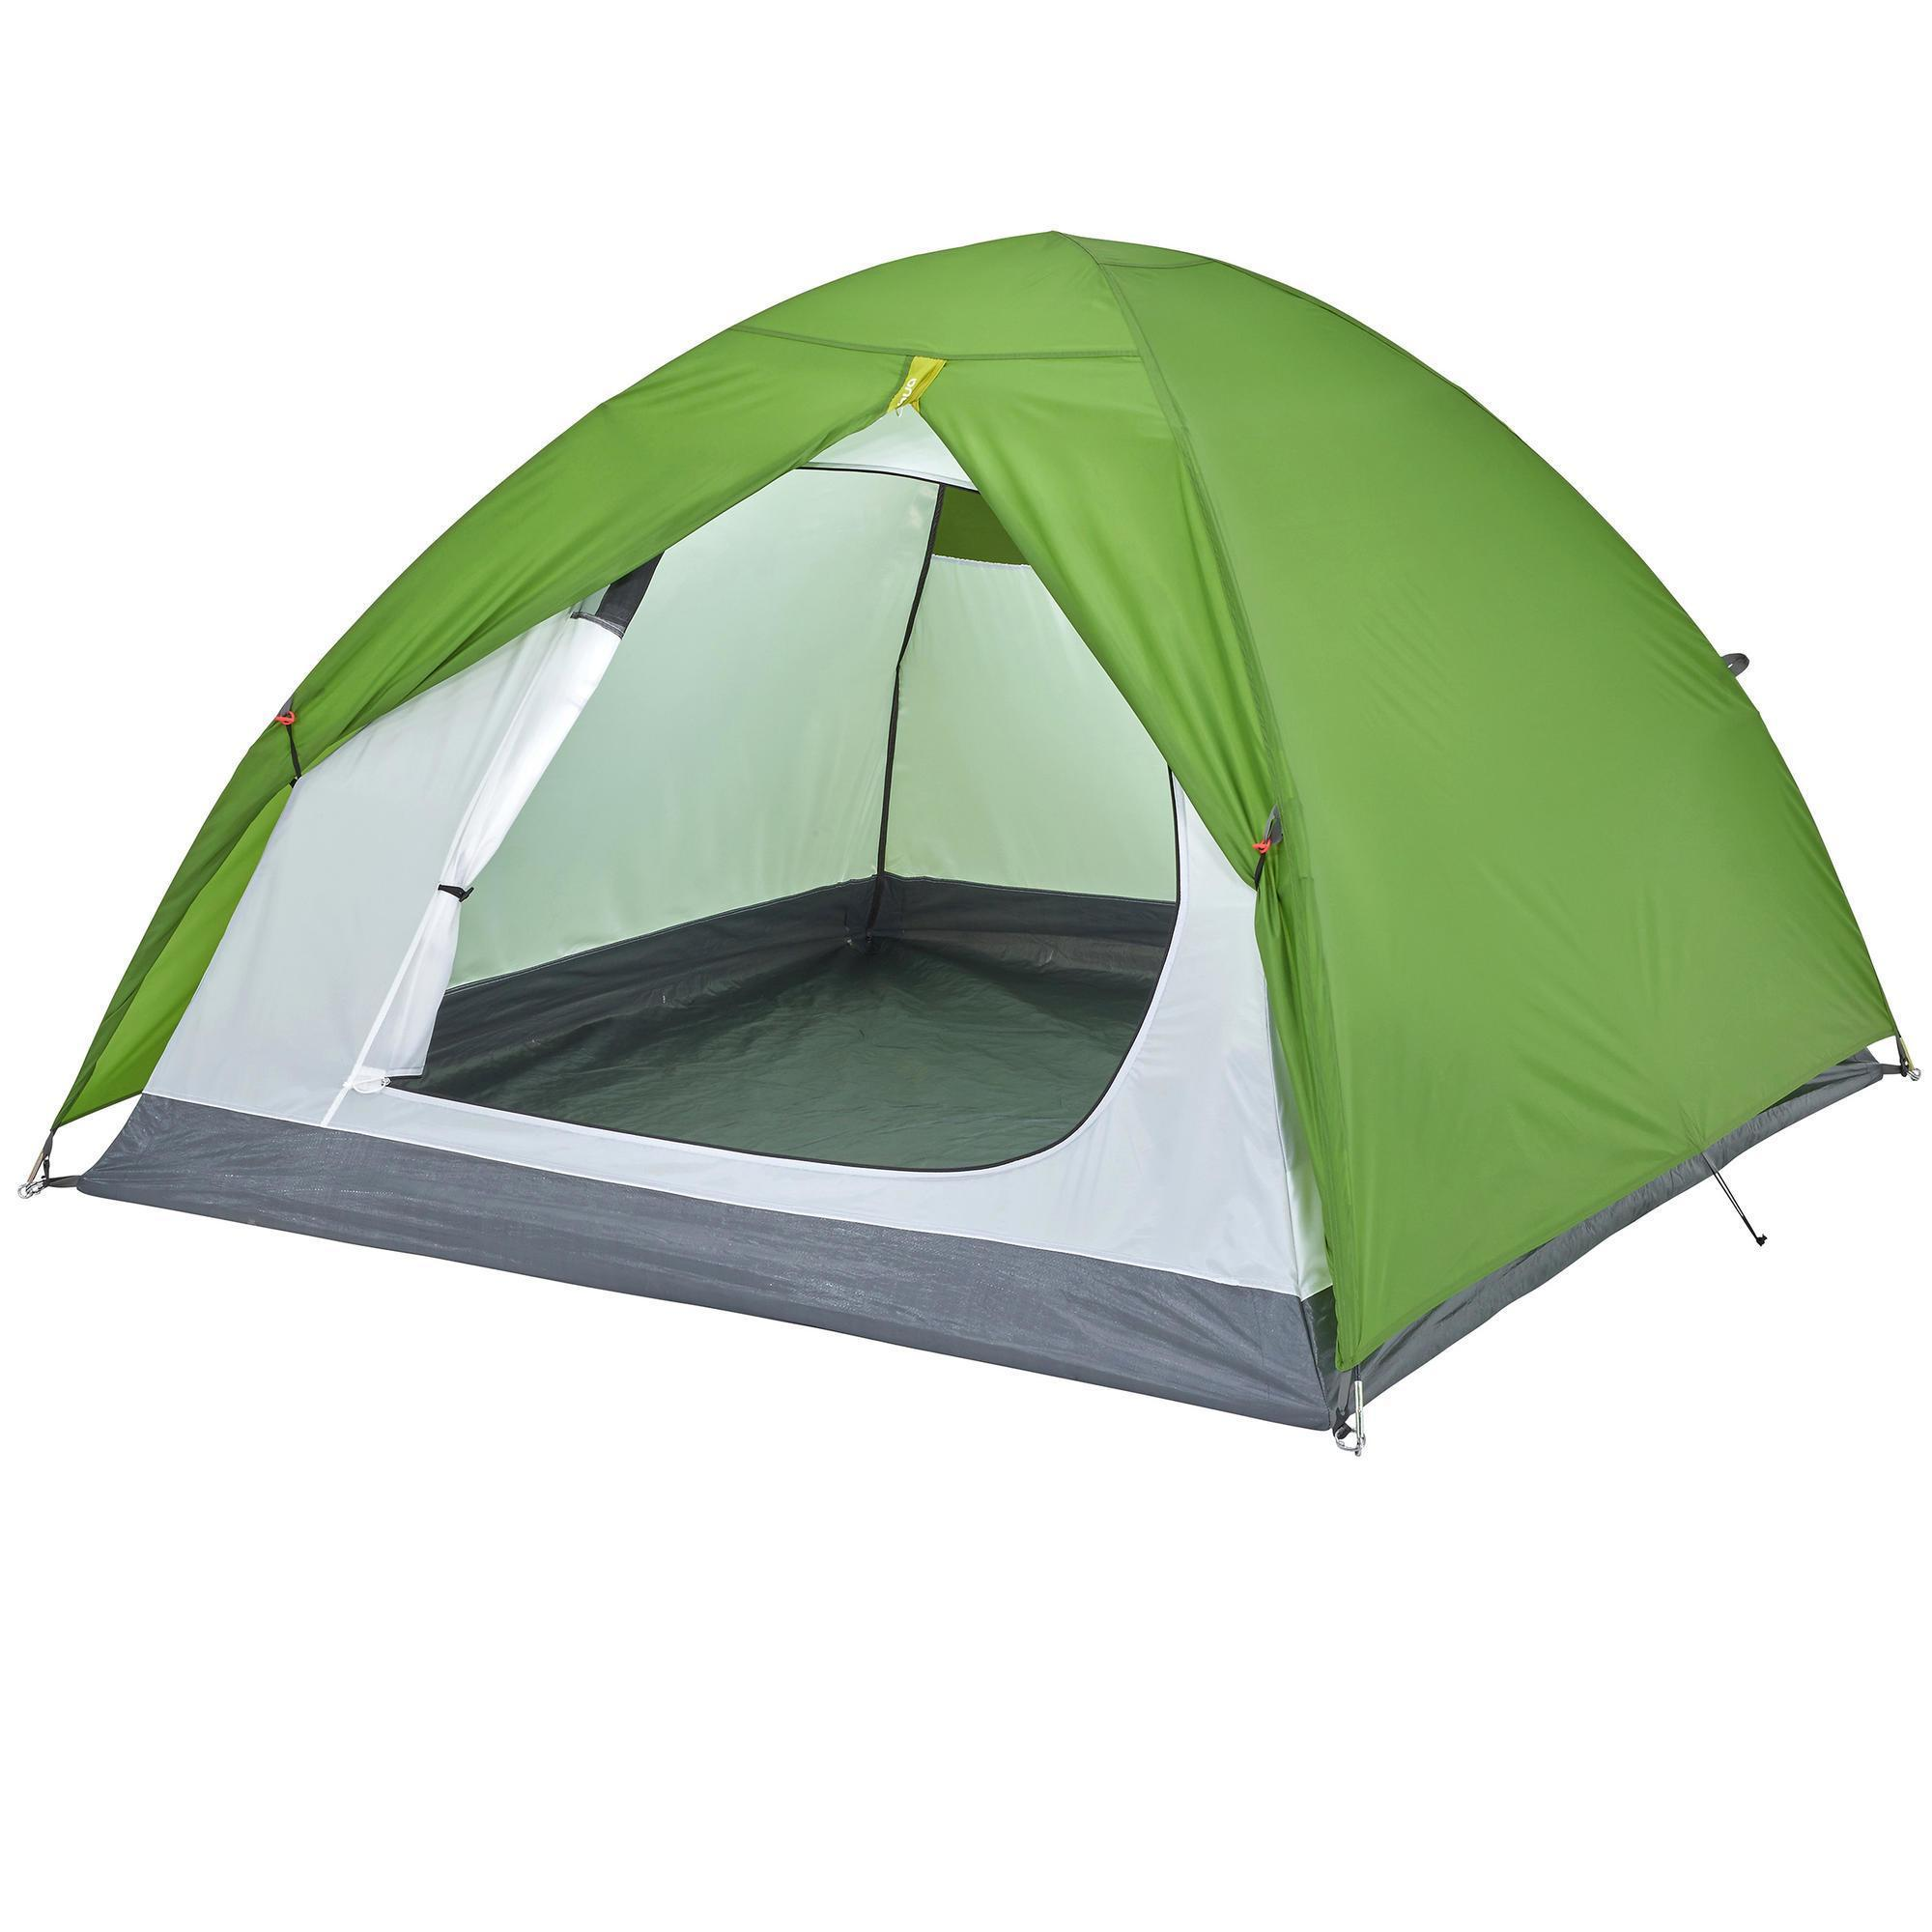 Arpenaz 3 Person Camping Tent - Green